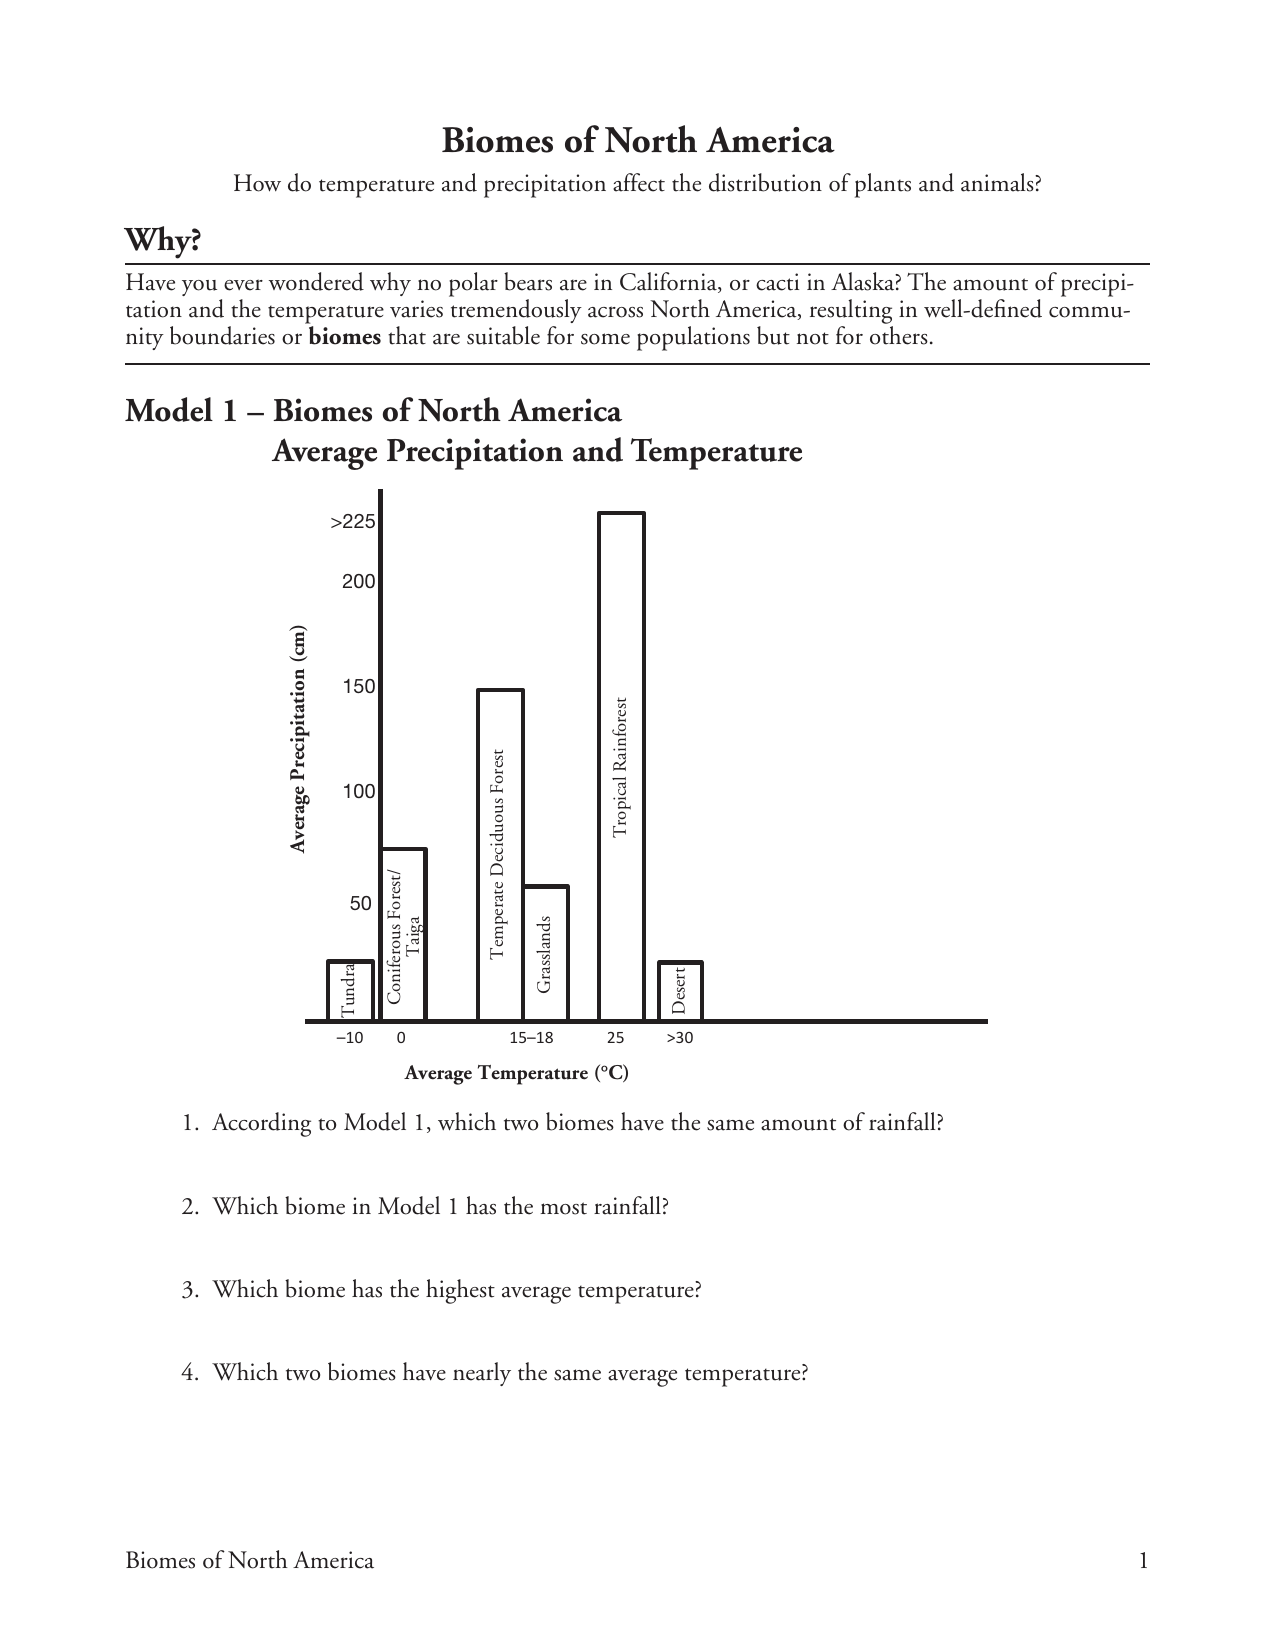 worksheet North American Biomes Worksheet 012785705 1 d6da675a91ffbf0fa263d1f0f499d471 png